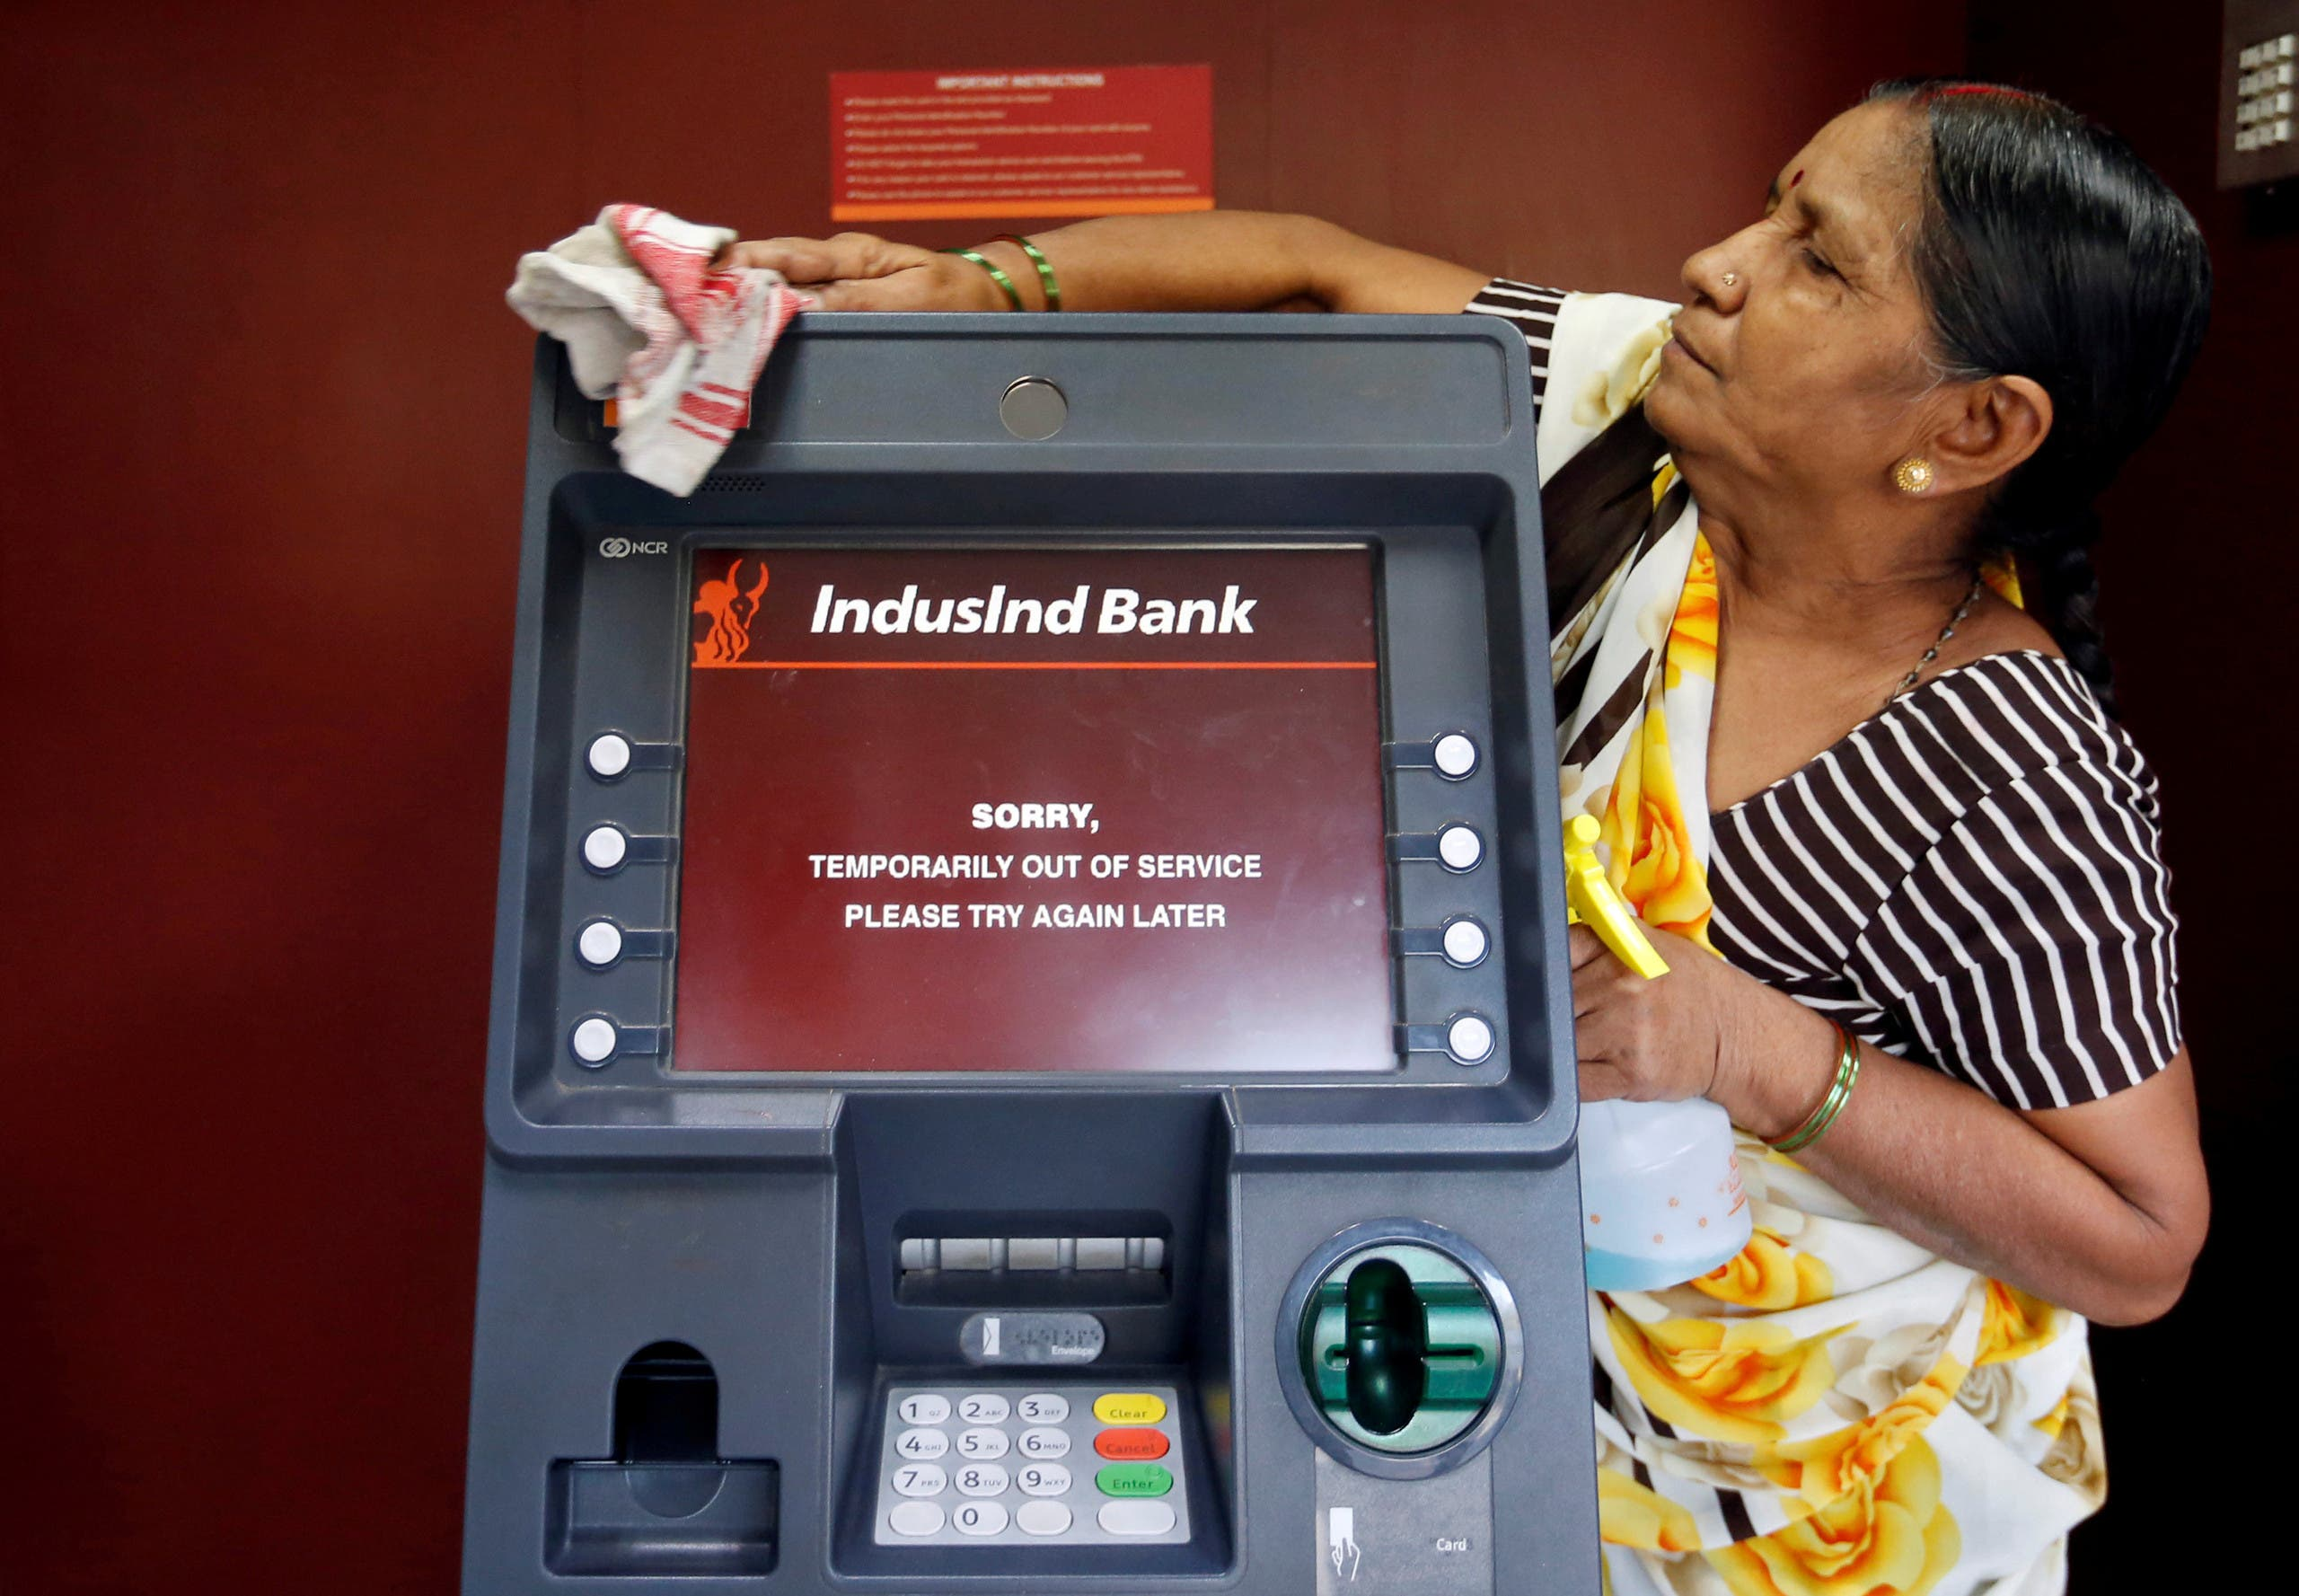 A woman cleans an ATM which is out of service in Mumbai, India, November 11, 2016.(Reuters)